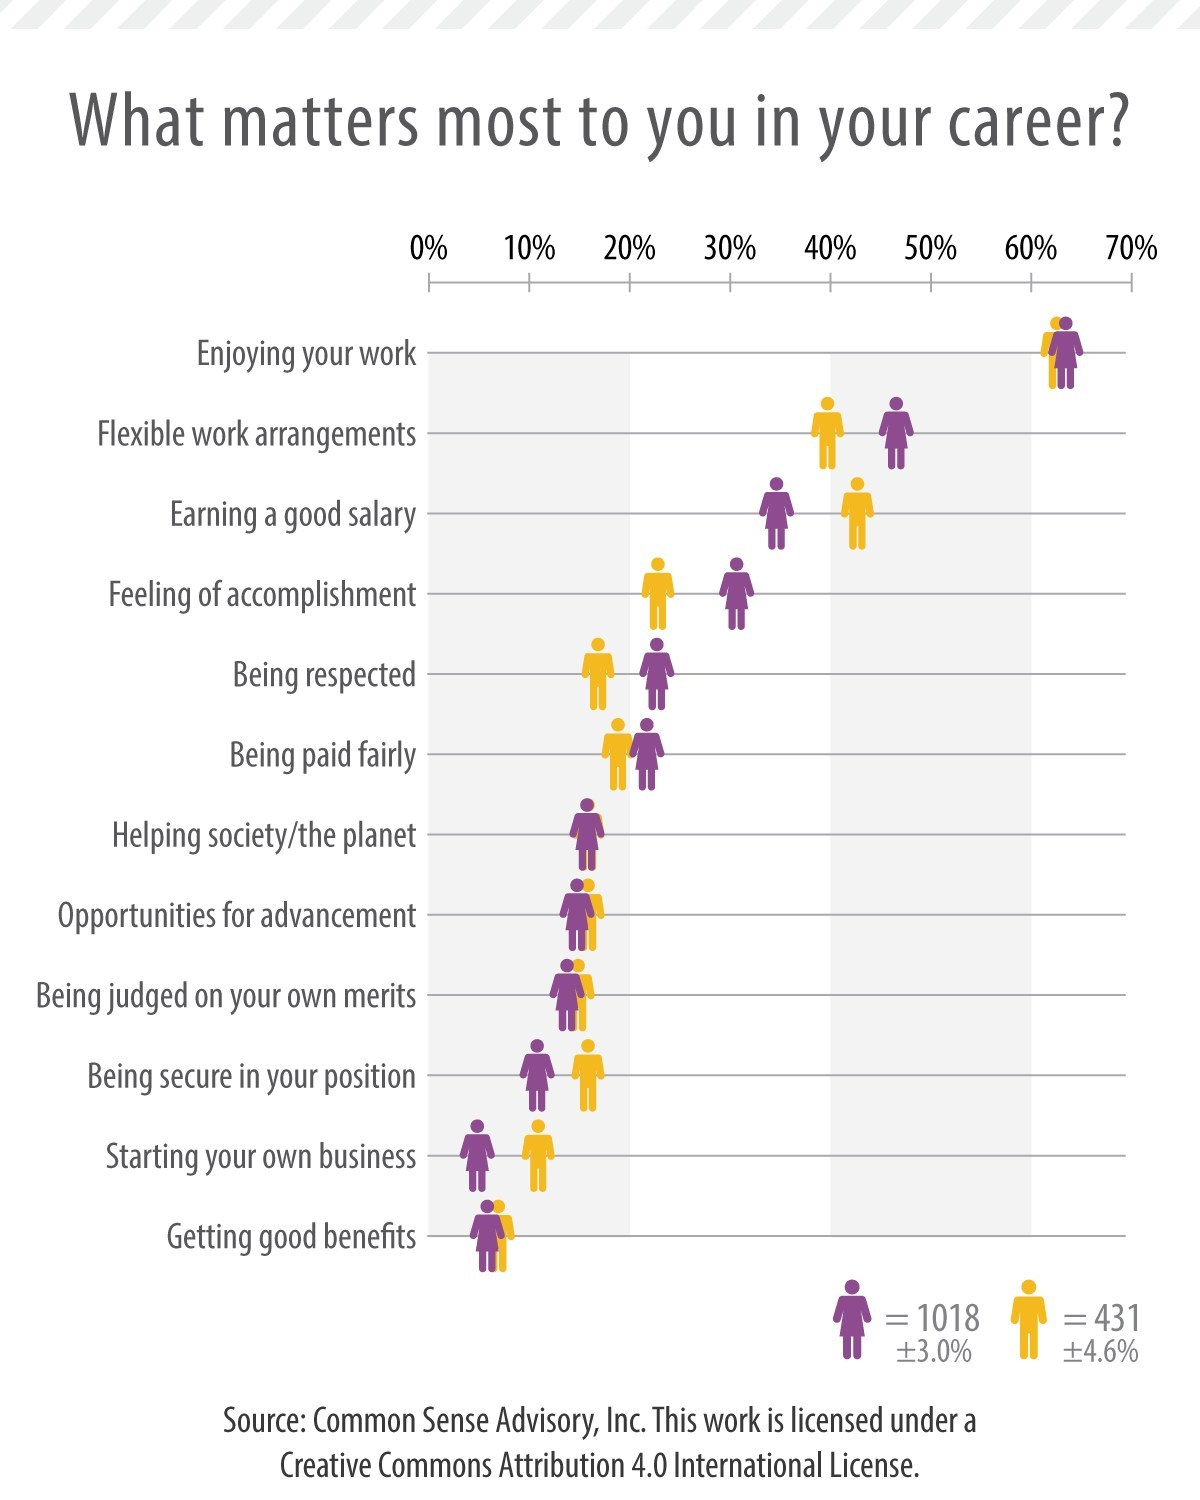 What matters most to you in your career?